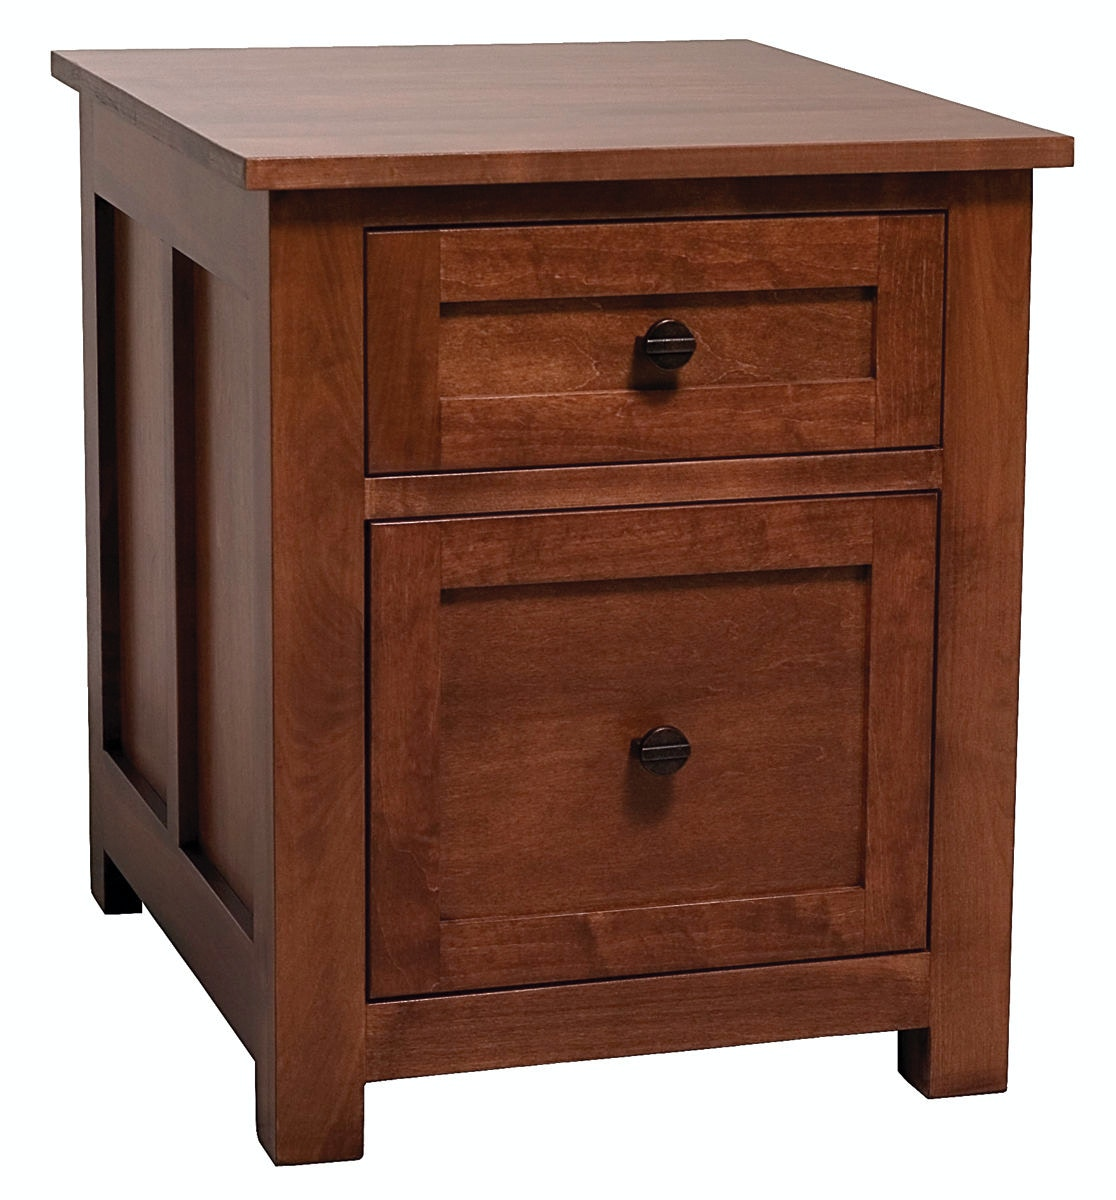 Abalone York File (1 Drawer/1 File) AW7125  sc 1 st  Penny Mustard & File/Storage Cabinets Furniture - Penny Mustard - Milwaukee Wisconsin